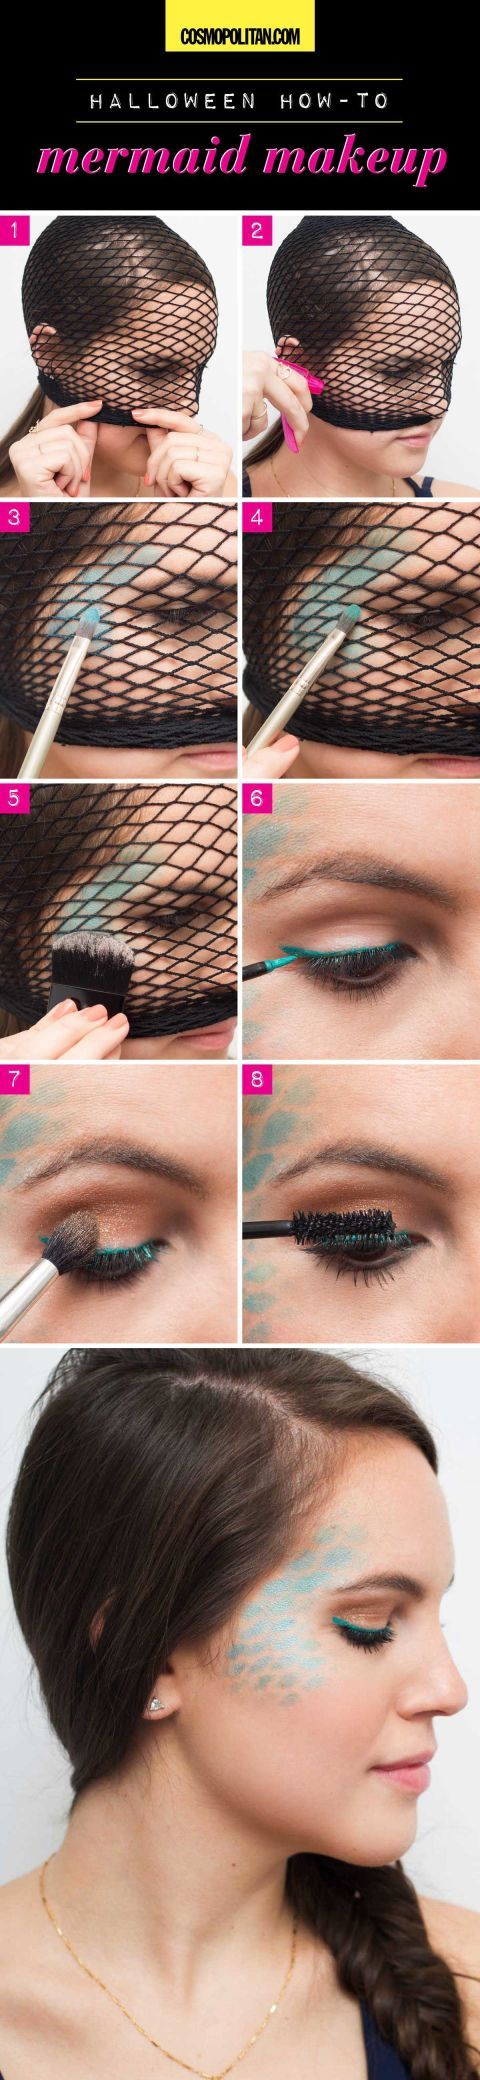 8 Easy Halloween Makeup Ideas - Halloween Makeup Tutorials With Makeup You Alrea...